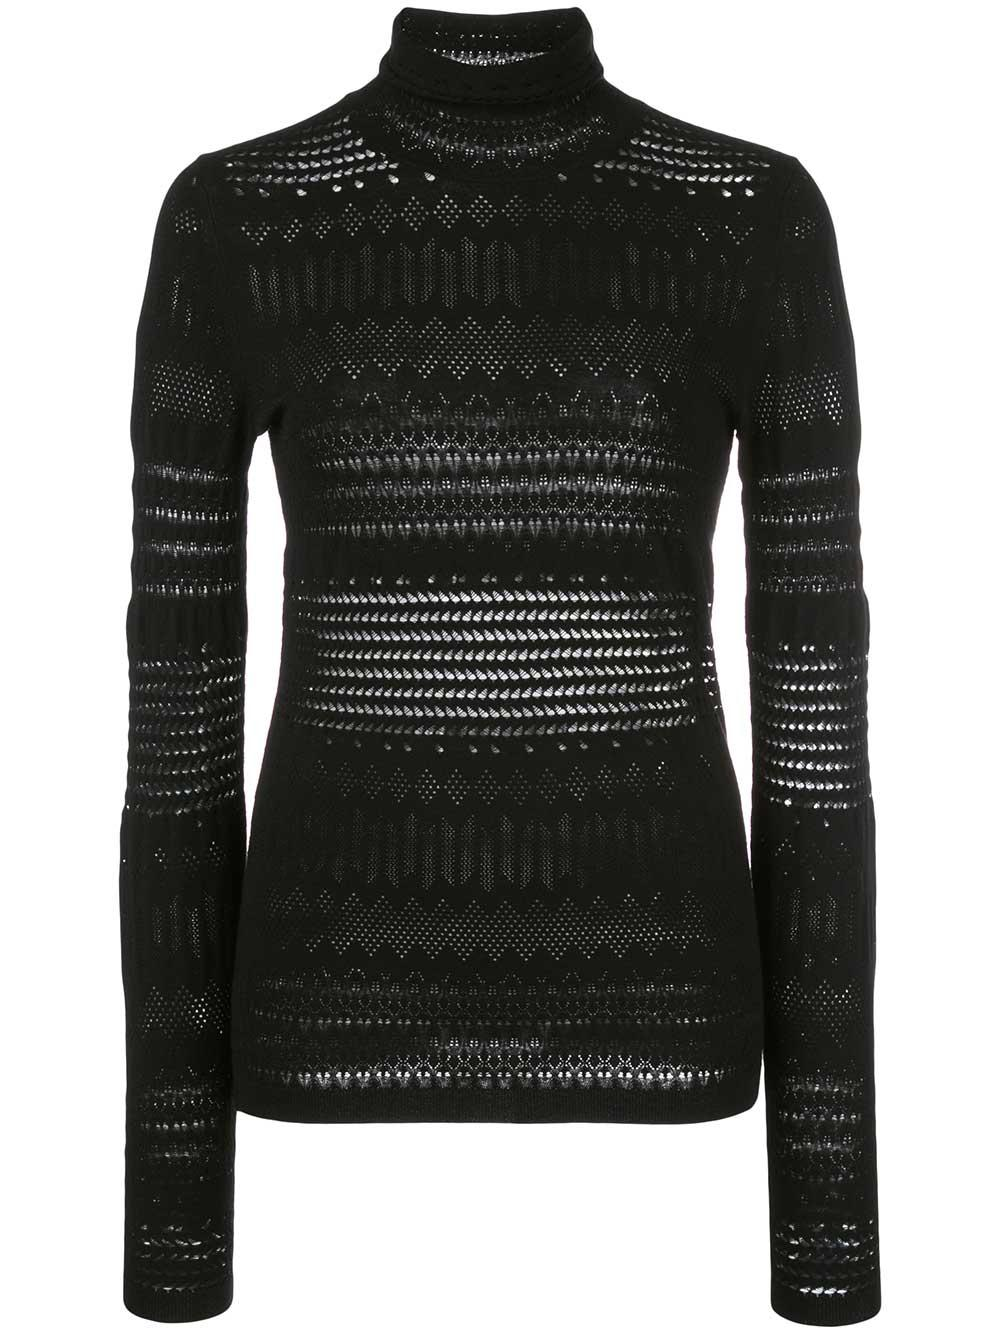 Sleek Sophisticated Pullover Turtleneck